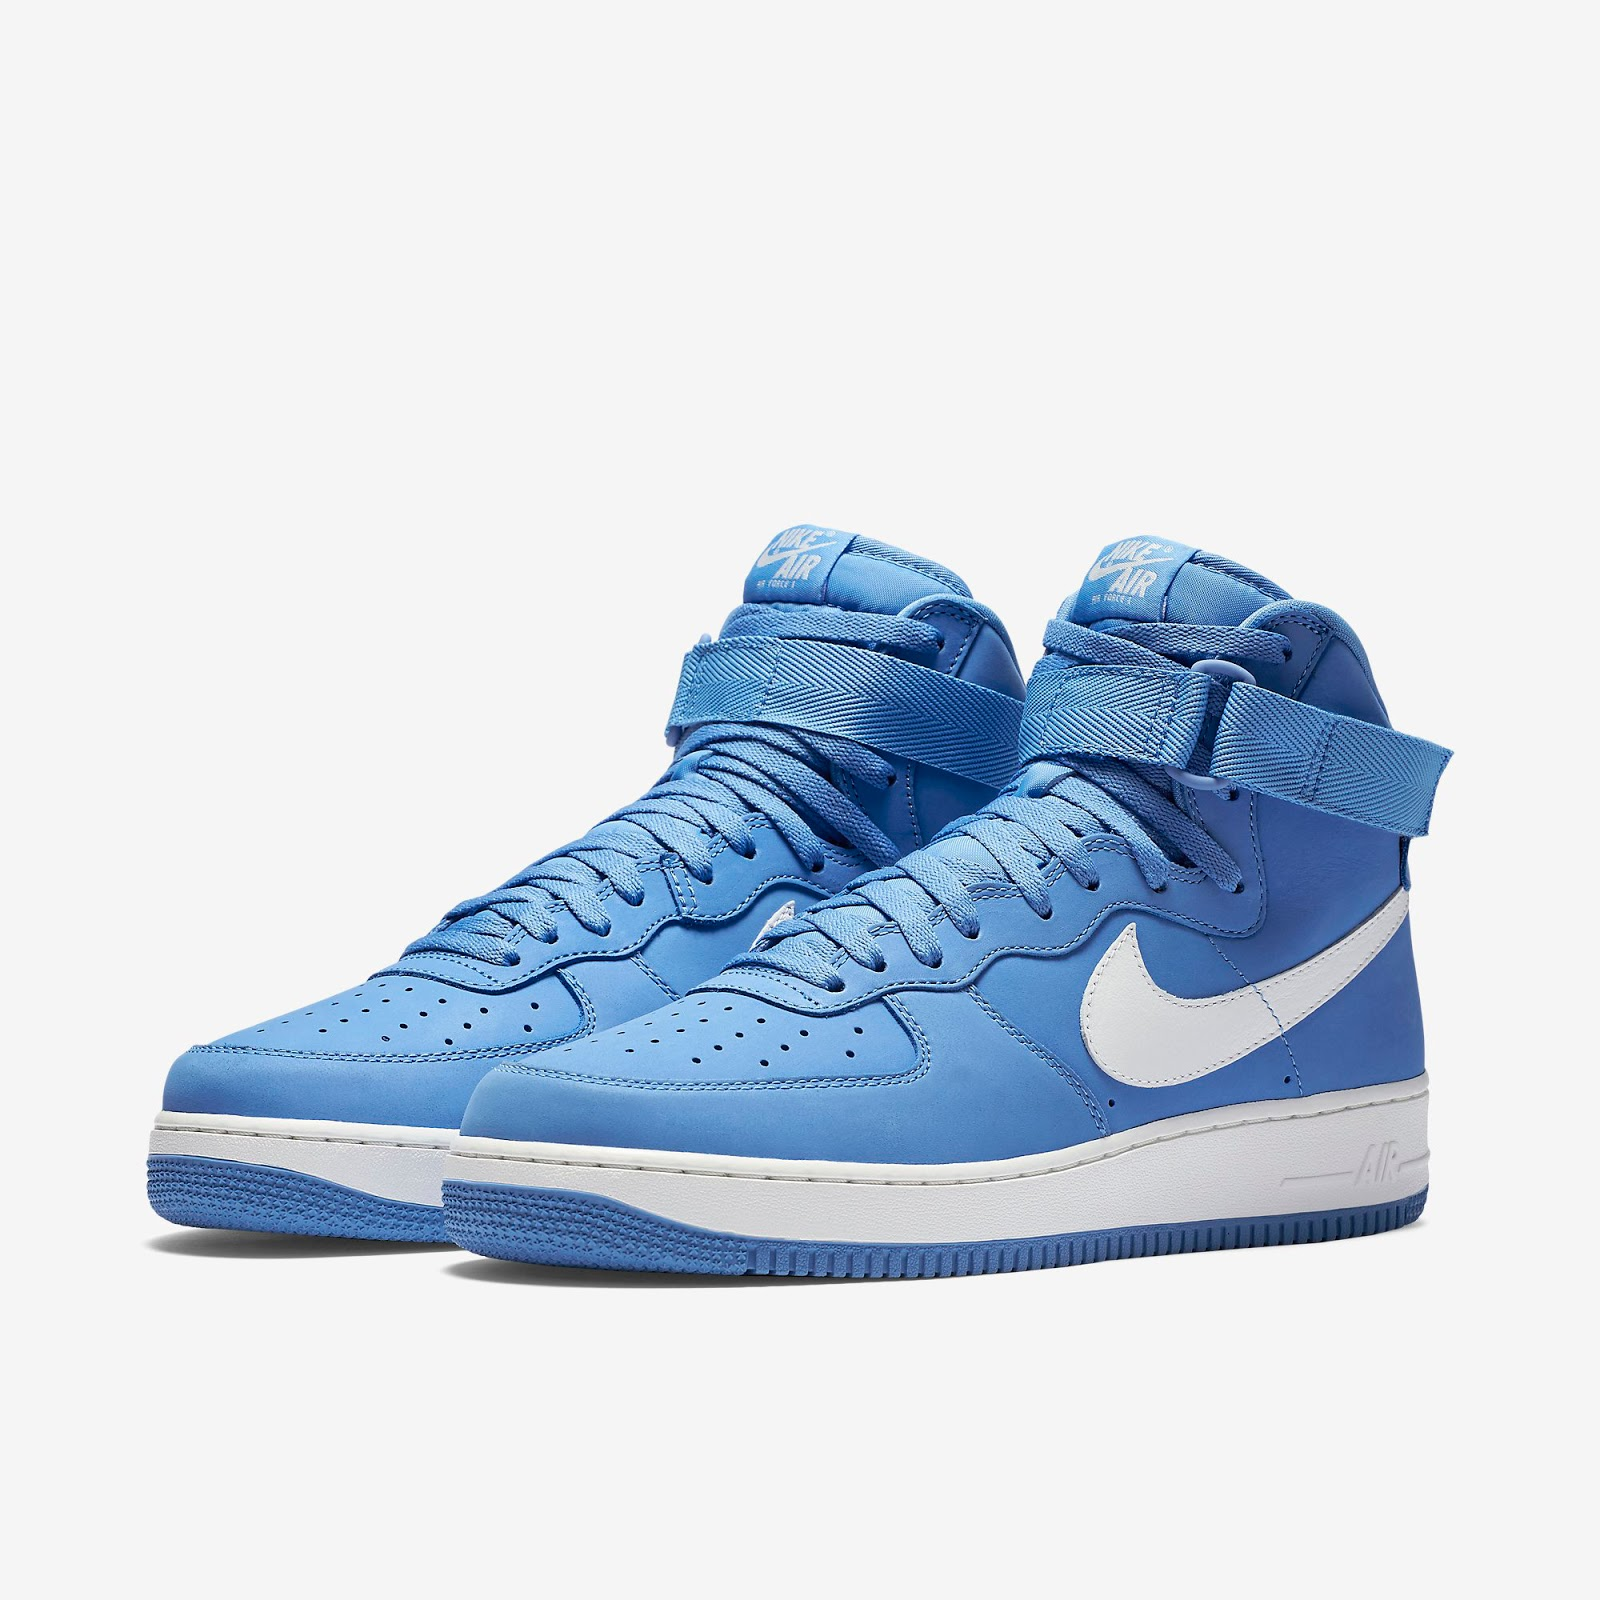 official photos 961dc f2fe4 ... homme chaussures 01610 4f15b  new zealand nike air force 1 high retro  qs university blue summit white release reminder 189f0